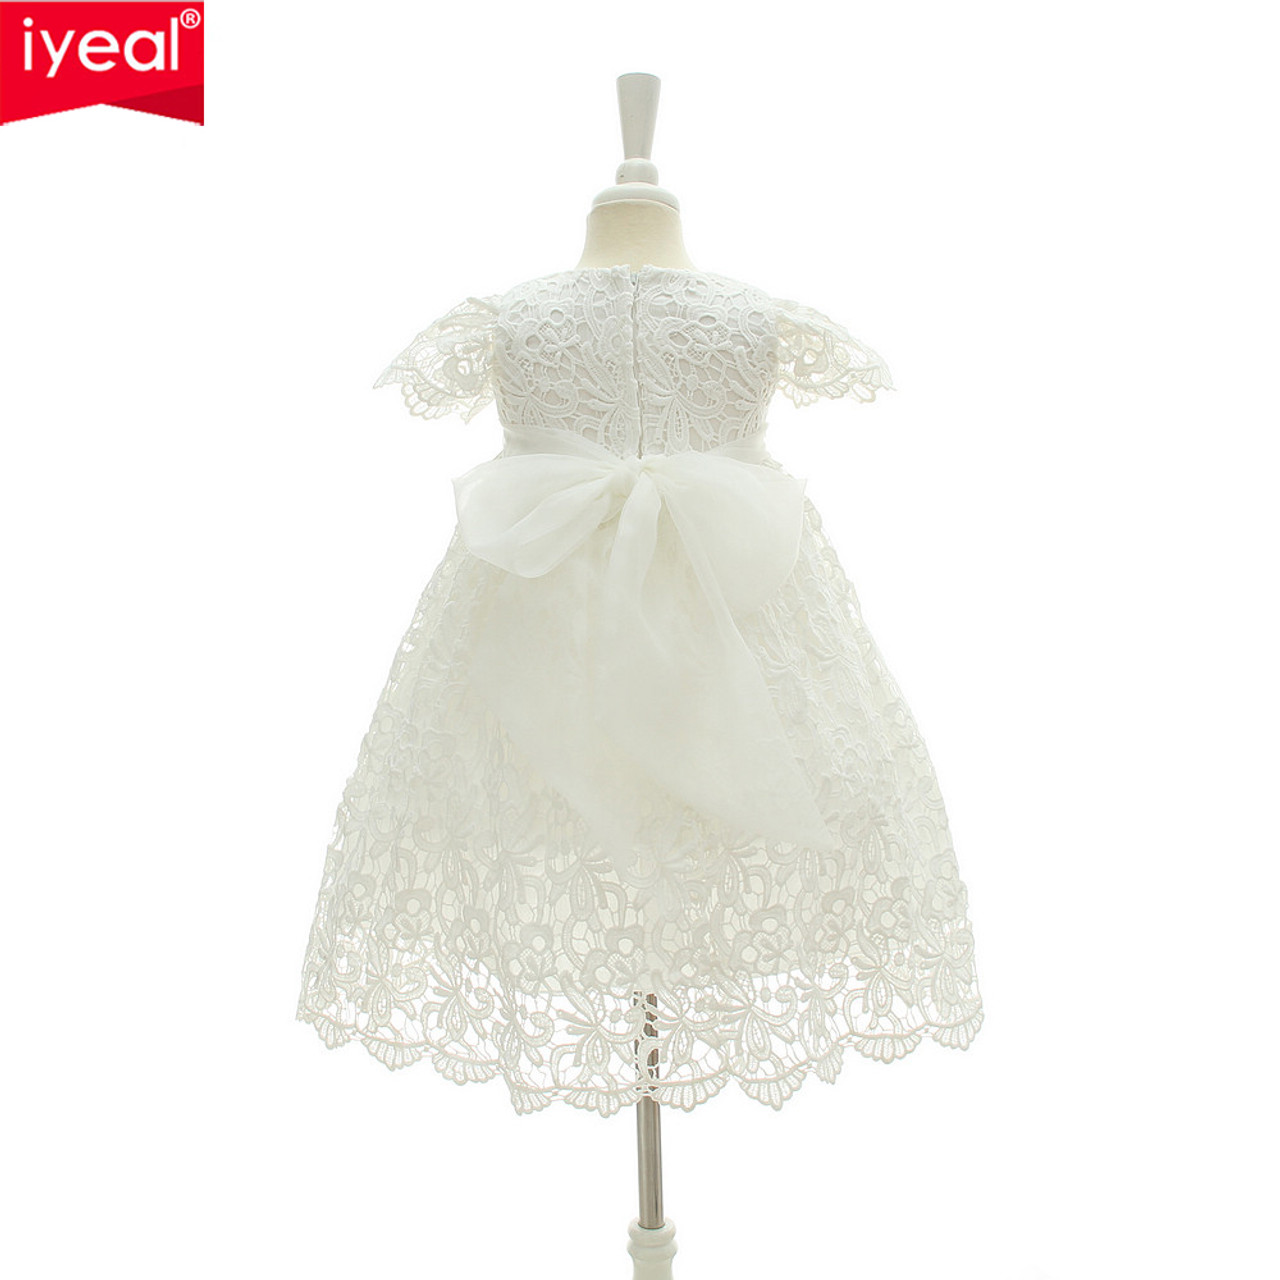 e9a745d9f1b46 ... IYEAL 2018 New 1 Year Birthday Baby Girl Dresses For Baptism Infant  Princess Lace Christening Gown ...